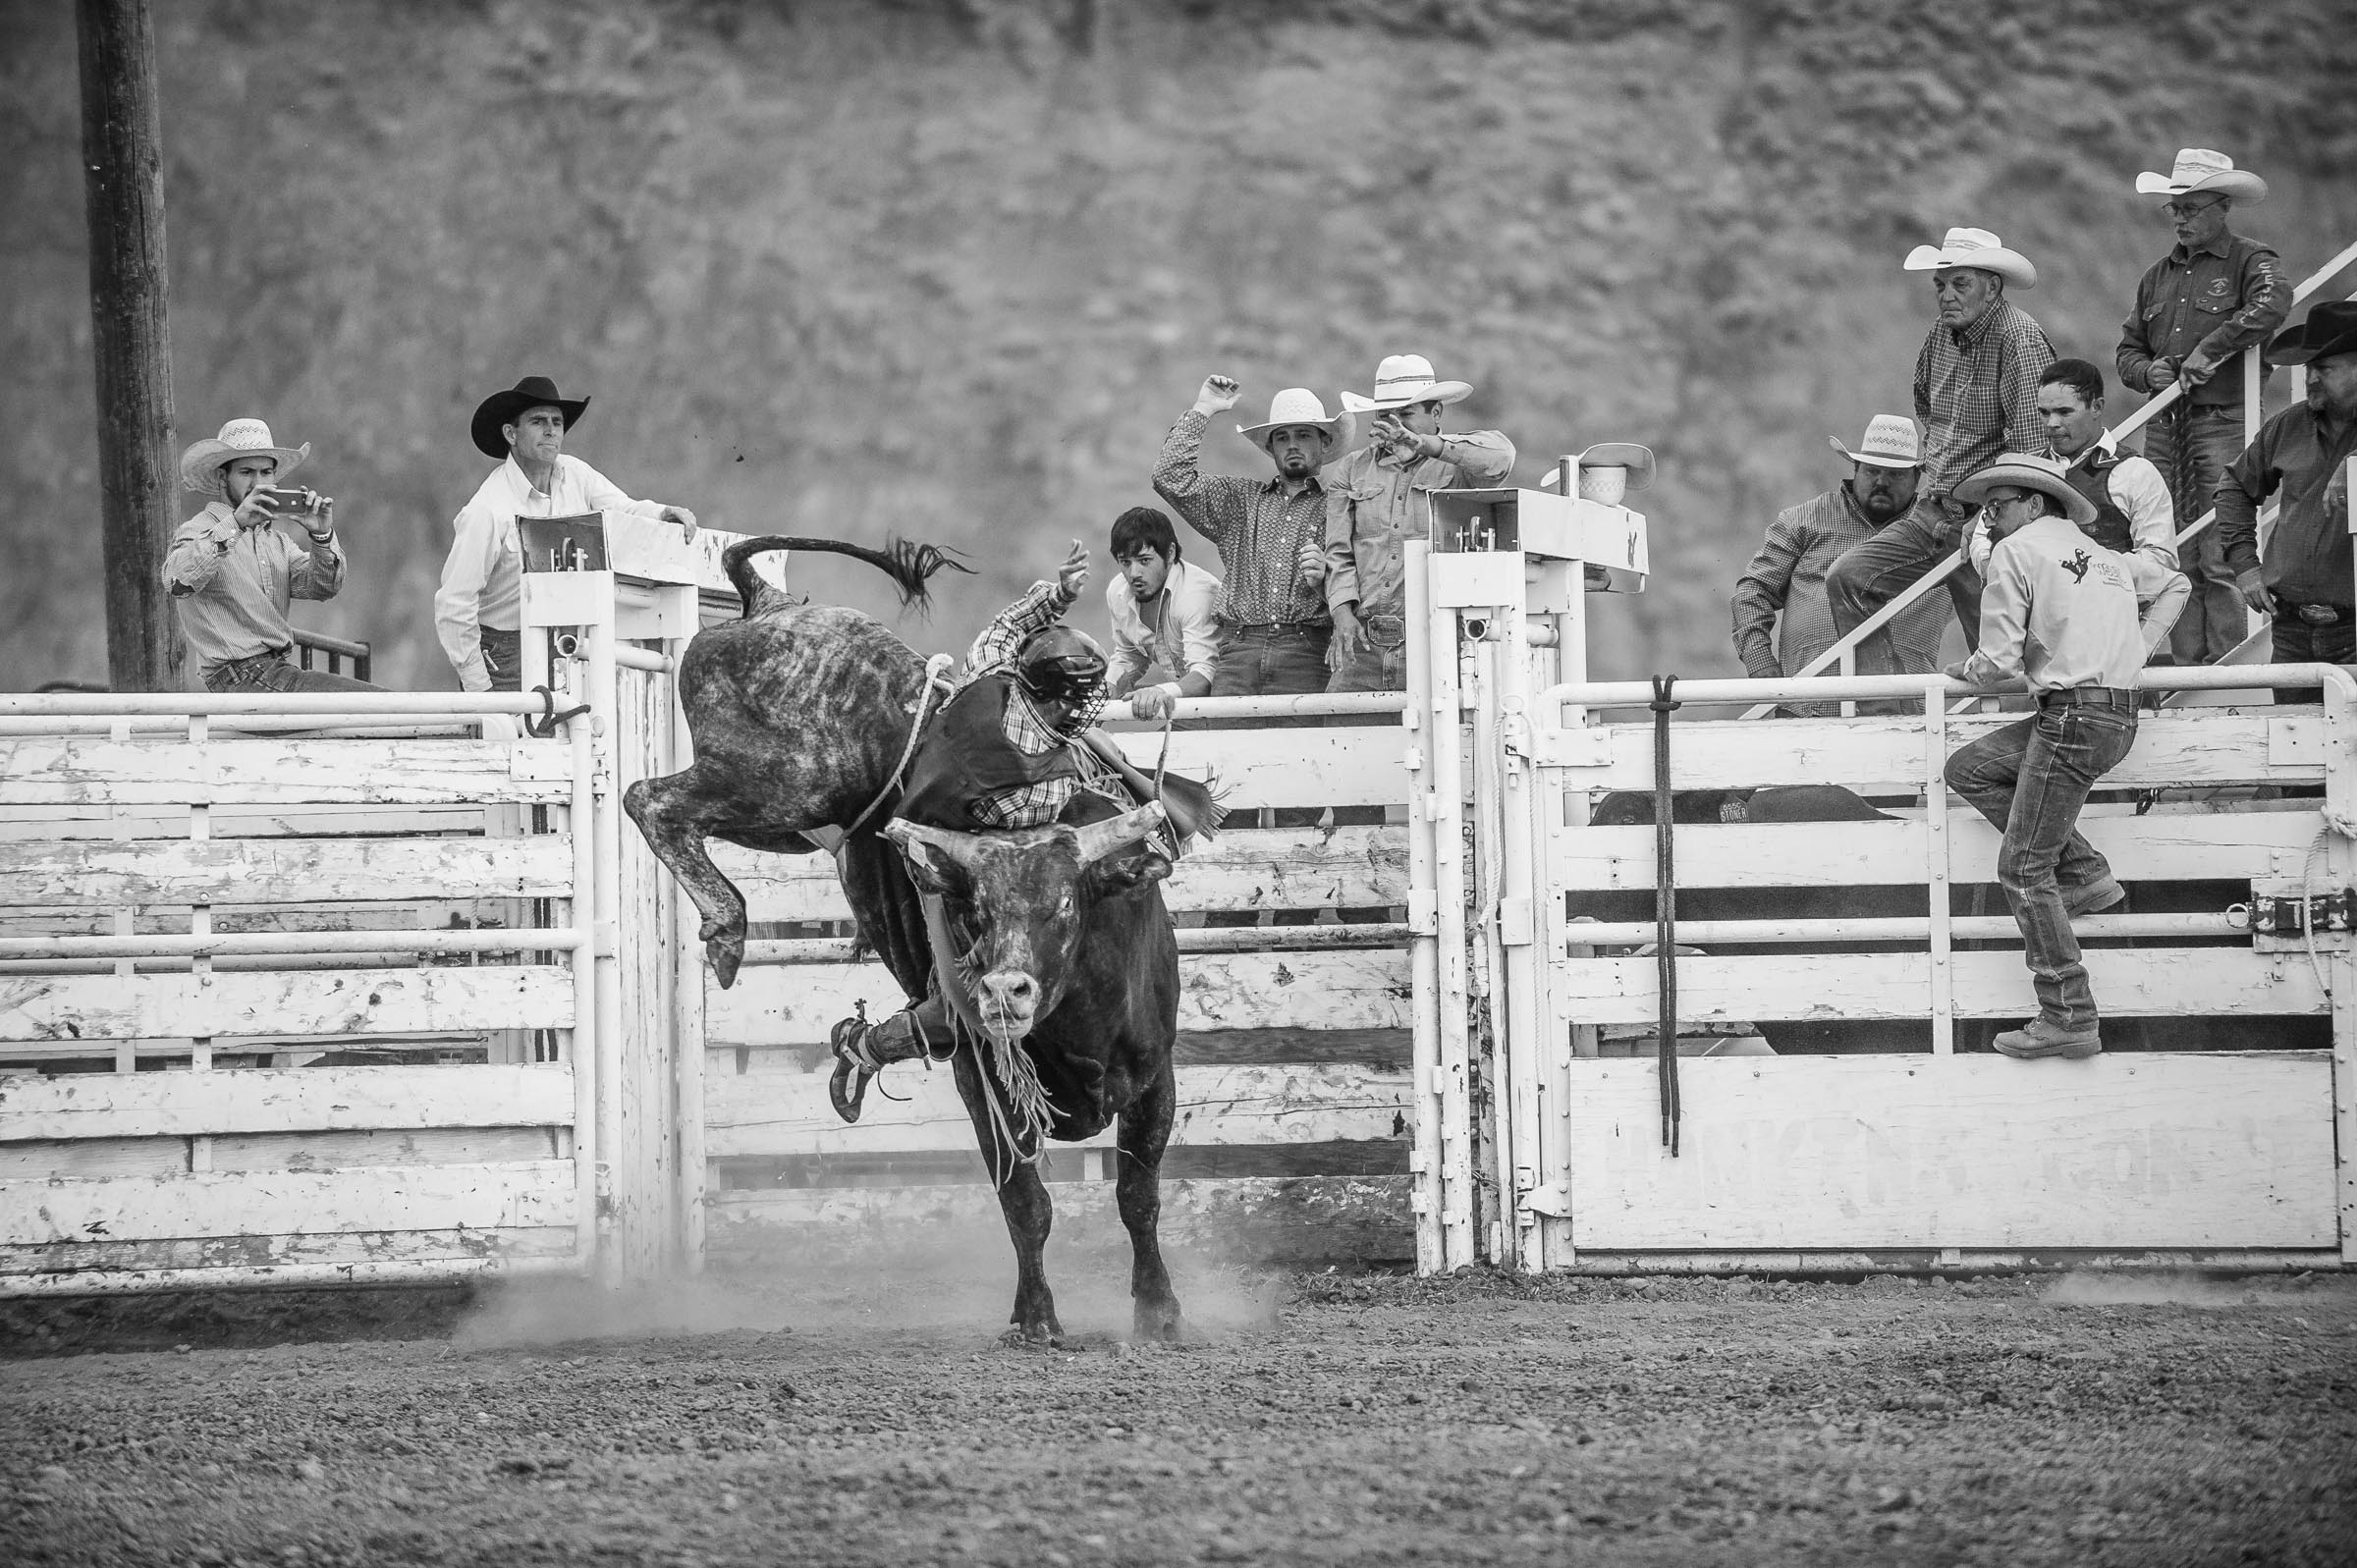 rodeo_whisky-bent_bynum-2611.JPG